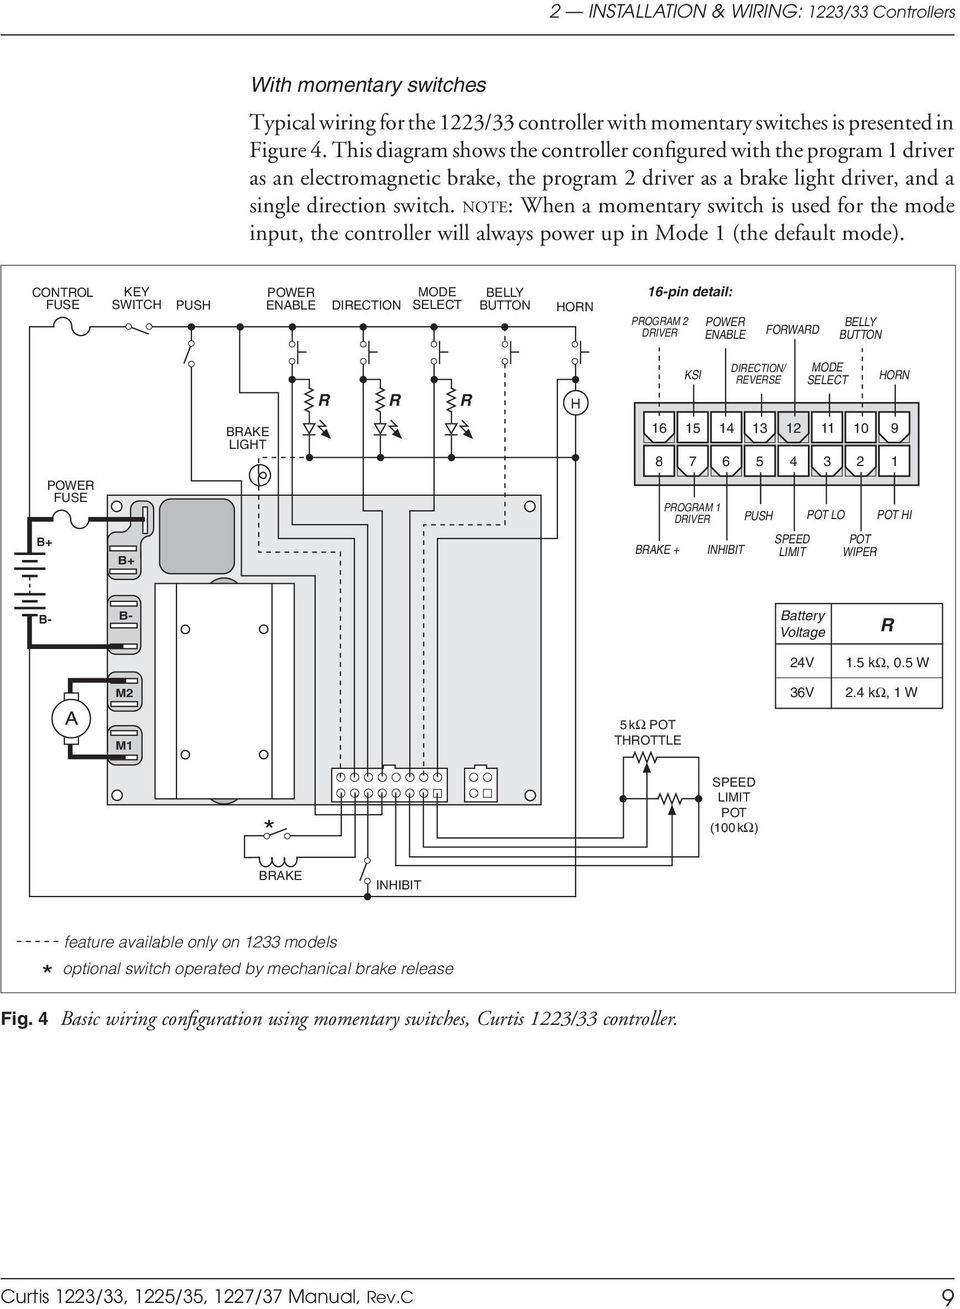 Curtis Instruments Inc Multimode Motor Controllers Pdf Wiring Mechanical Brake Switch Note When A Momentary Is Used For The Mode Input Controller Will